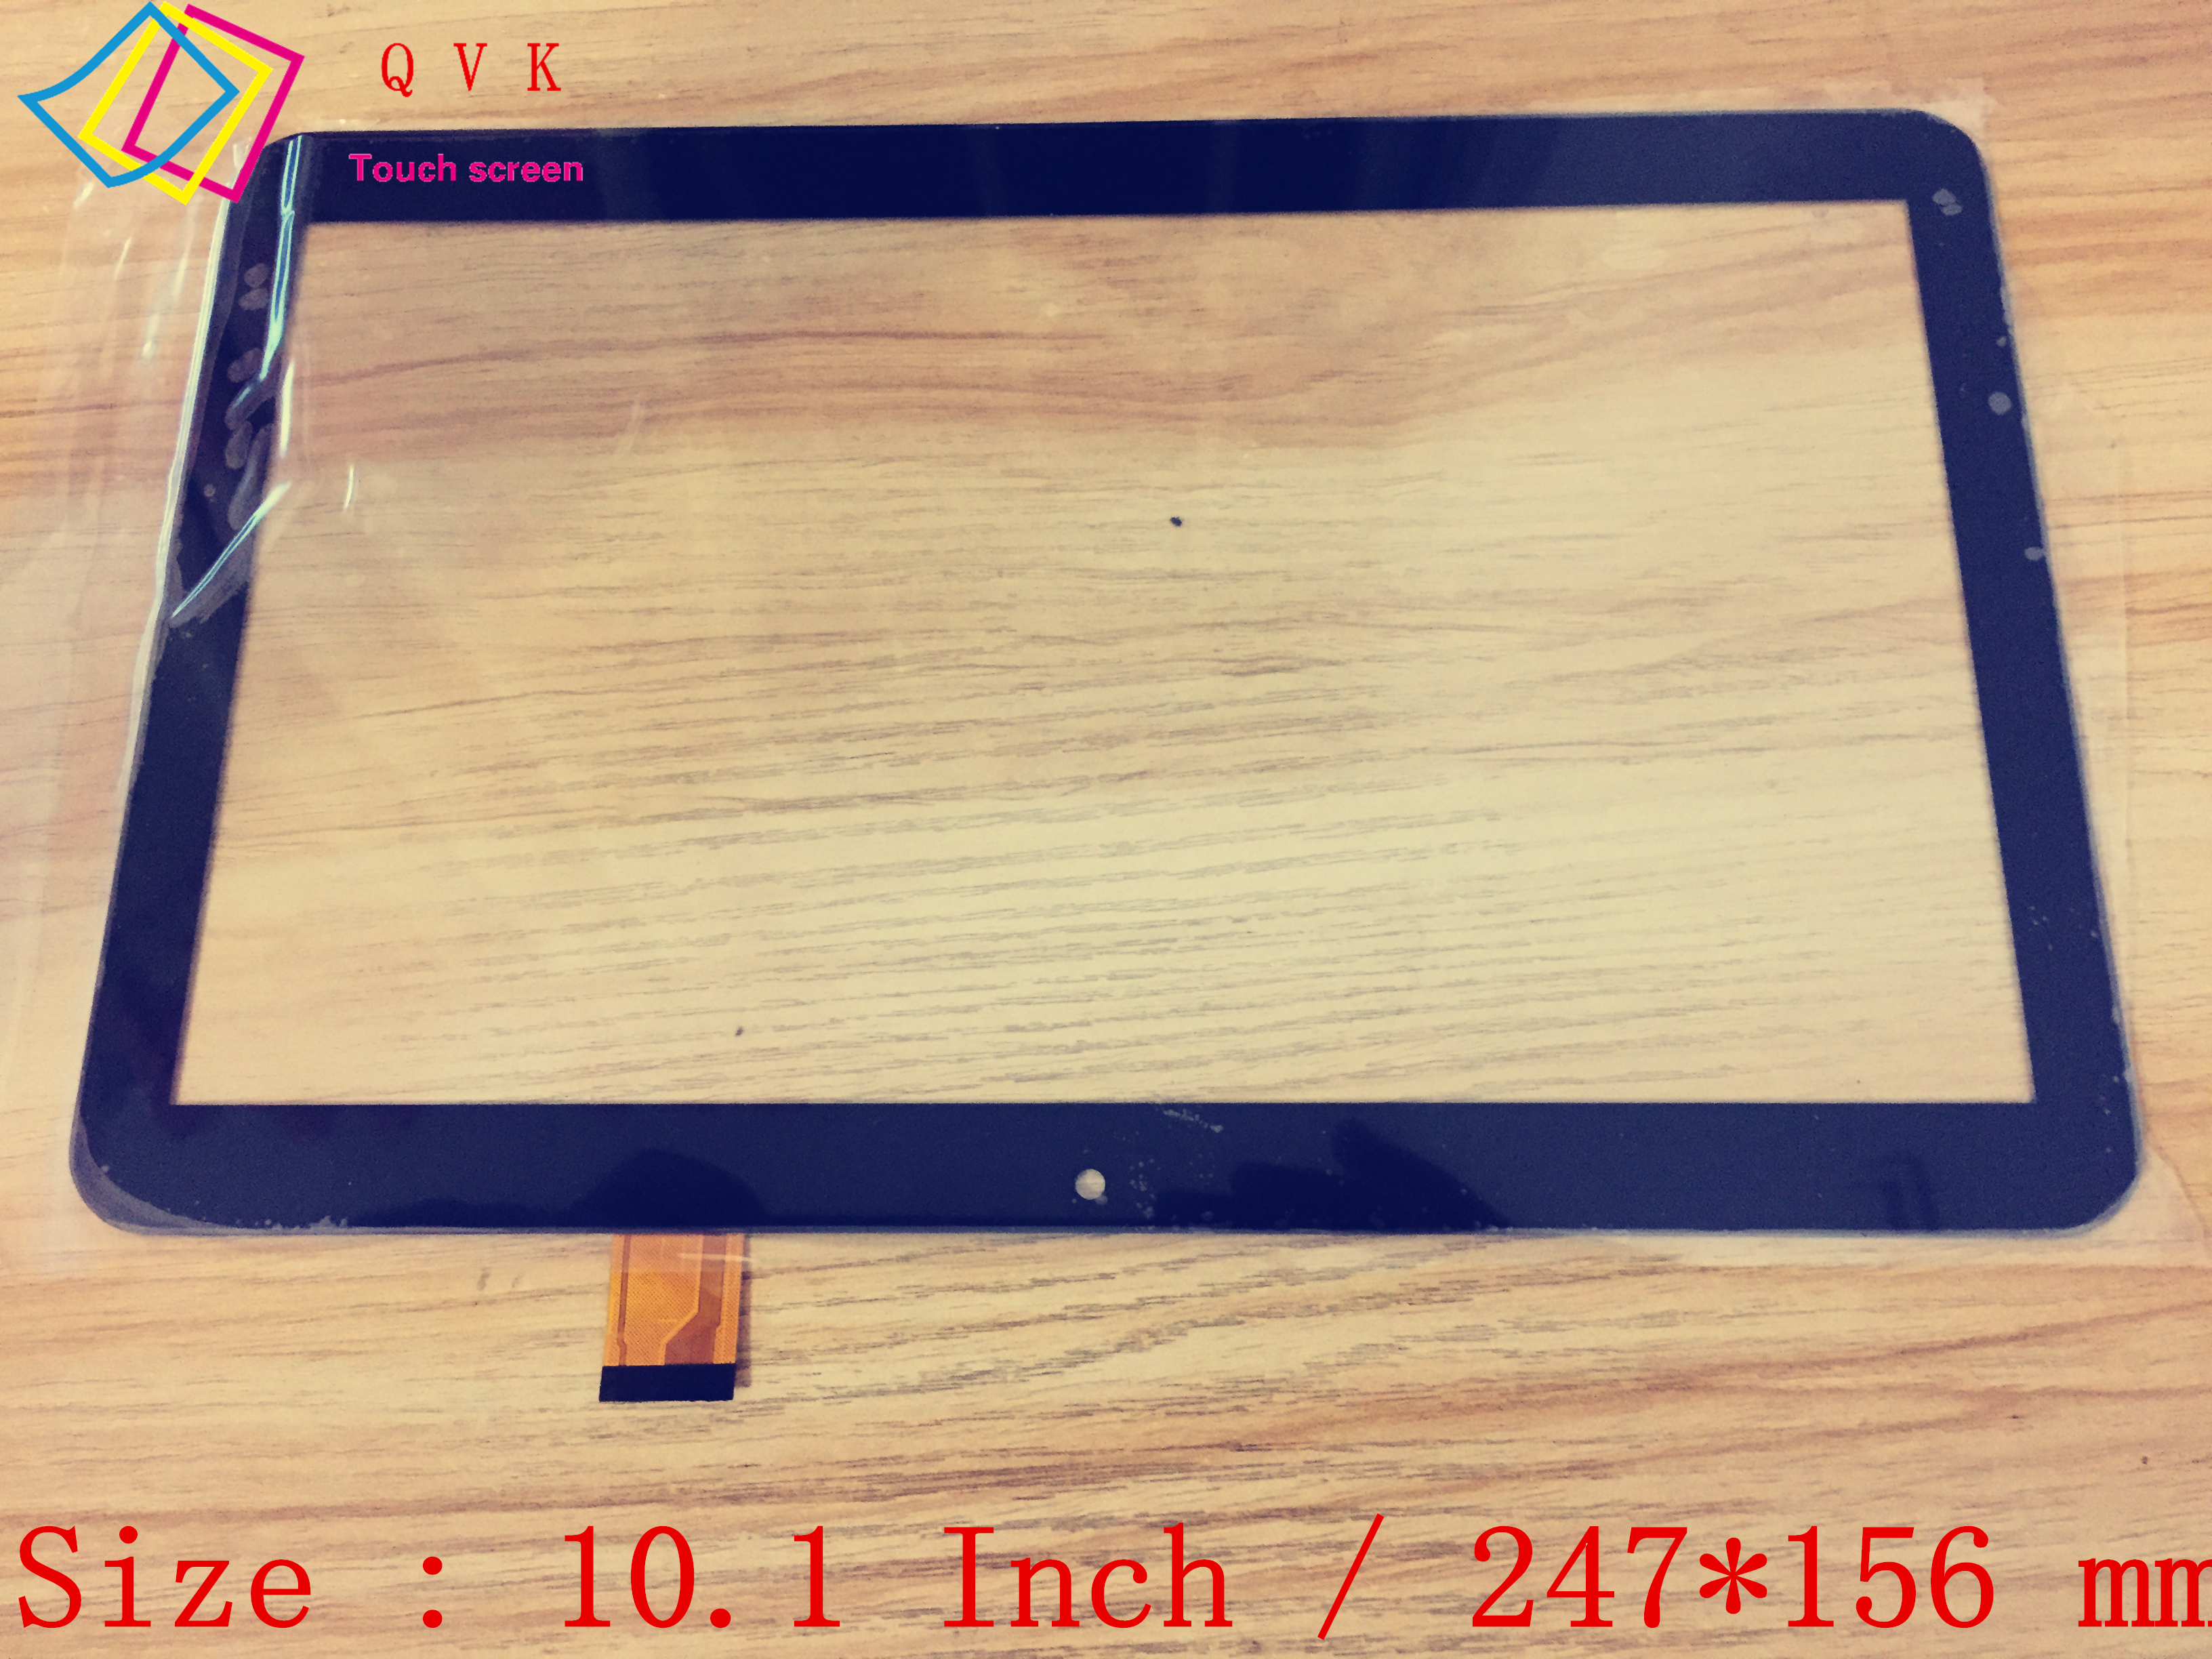 Black 10.1 Inch For Irbis TZ141 TZ142 TZ143 TZ144  Tablet Pc Capacitive Touch Screen Glass Digitizer Panel Free Shipping